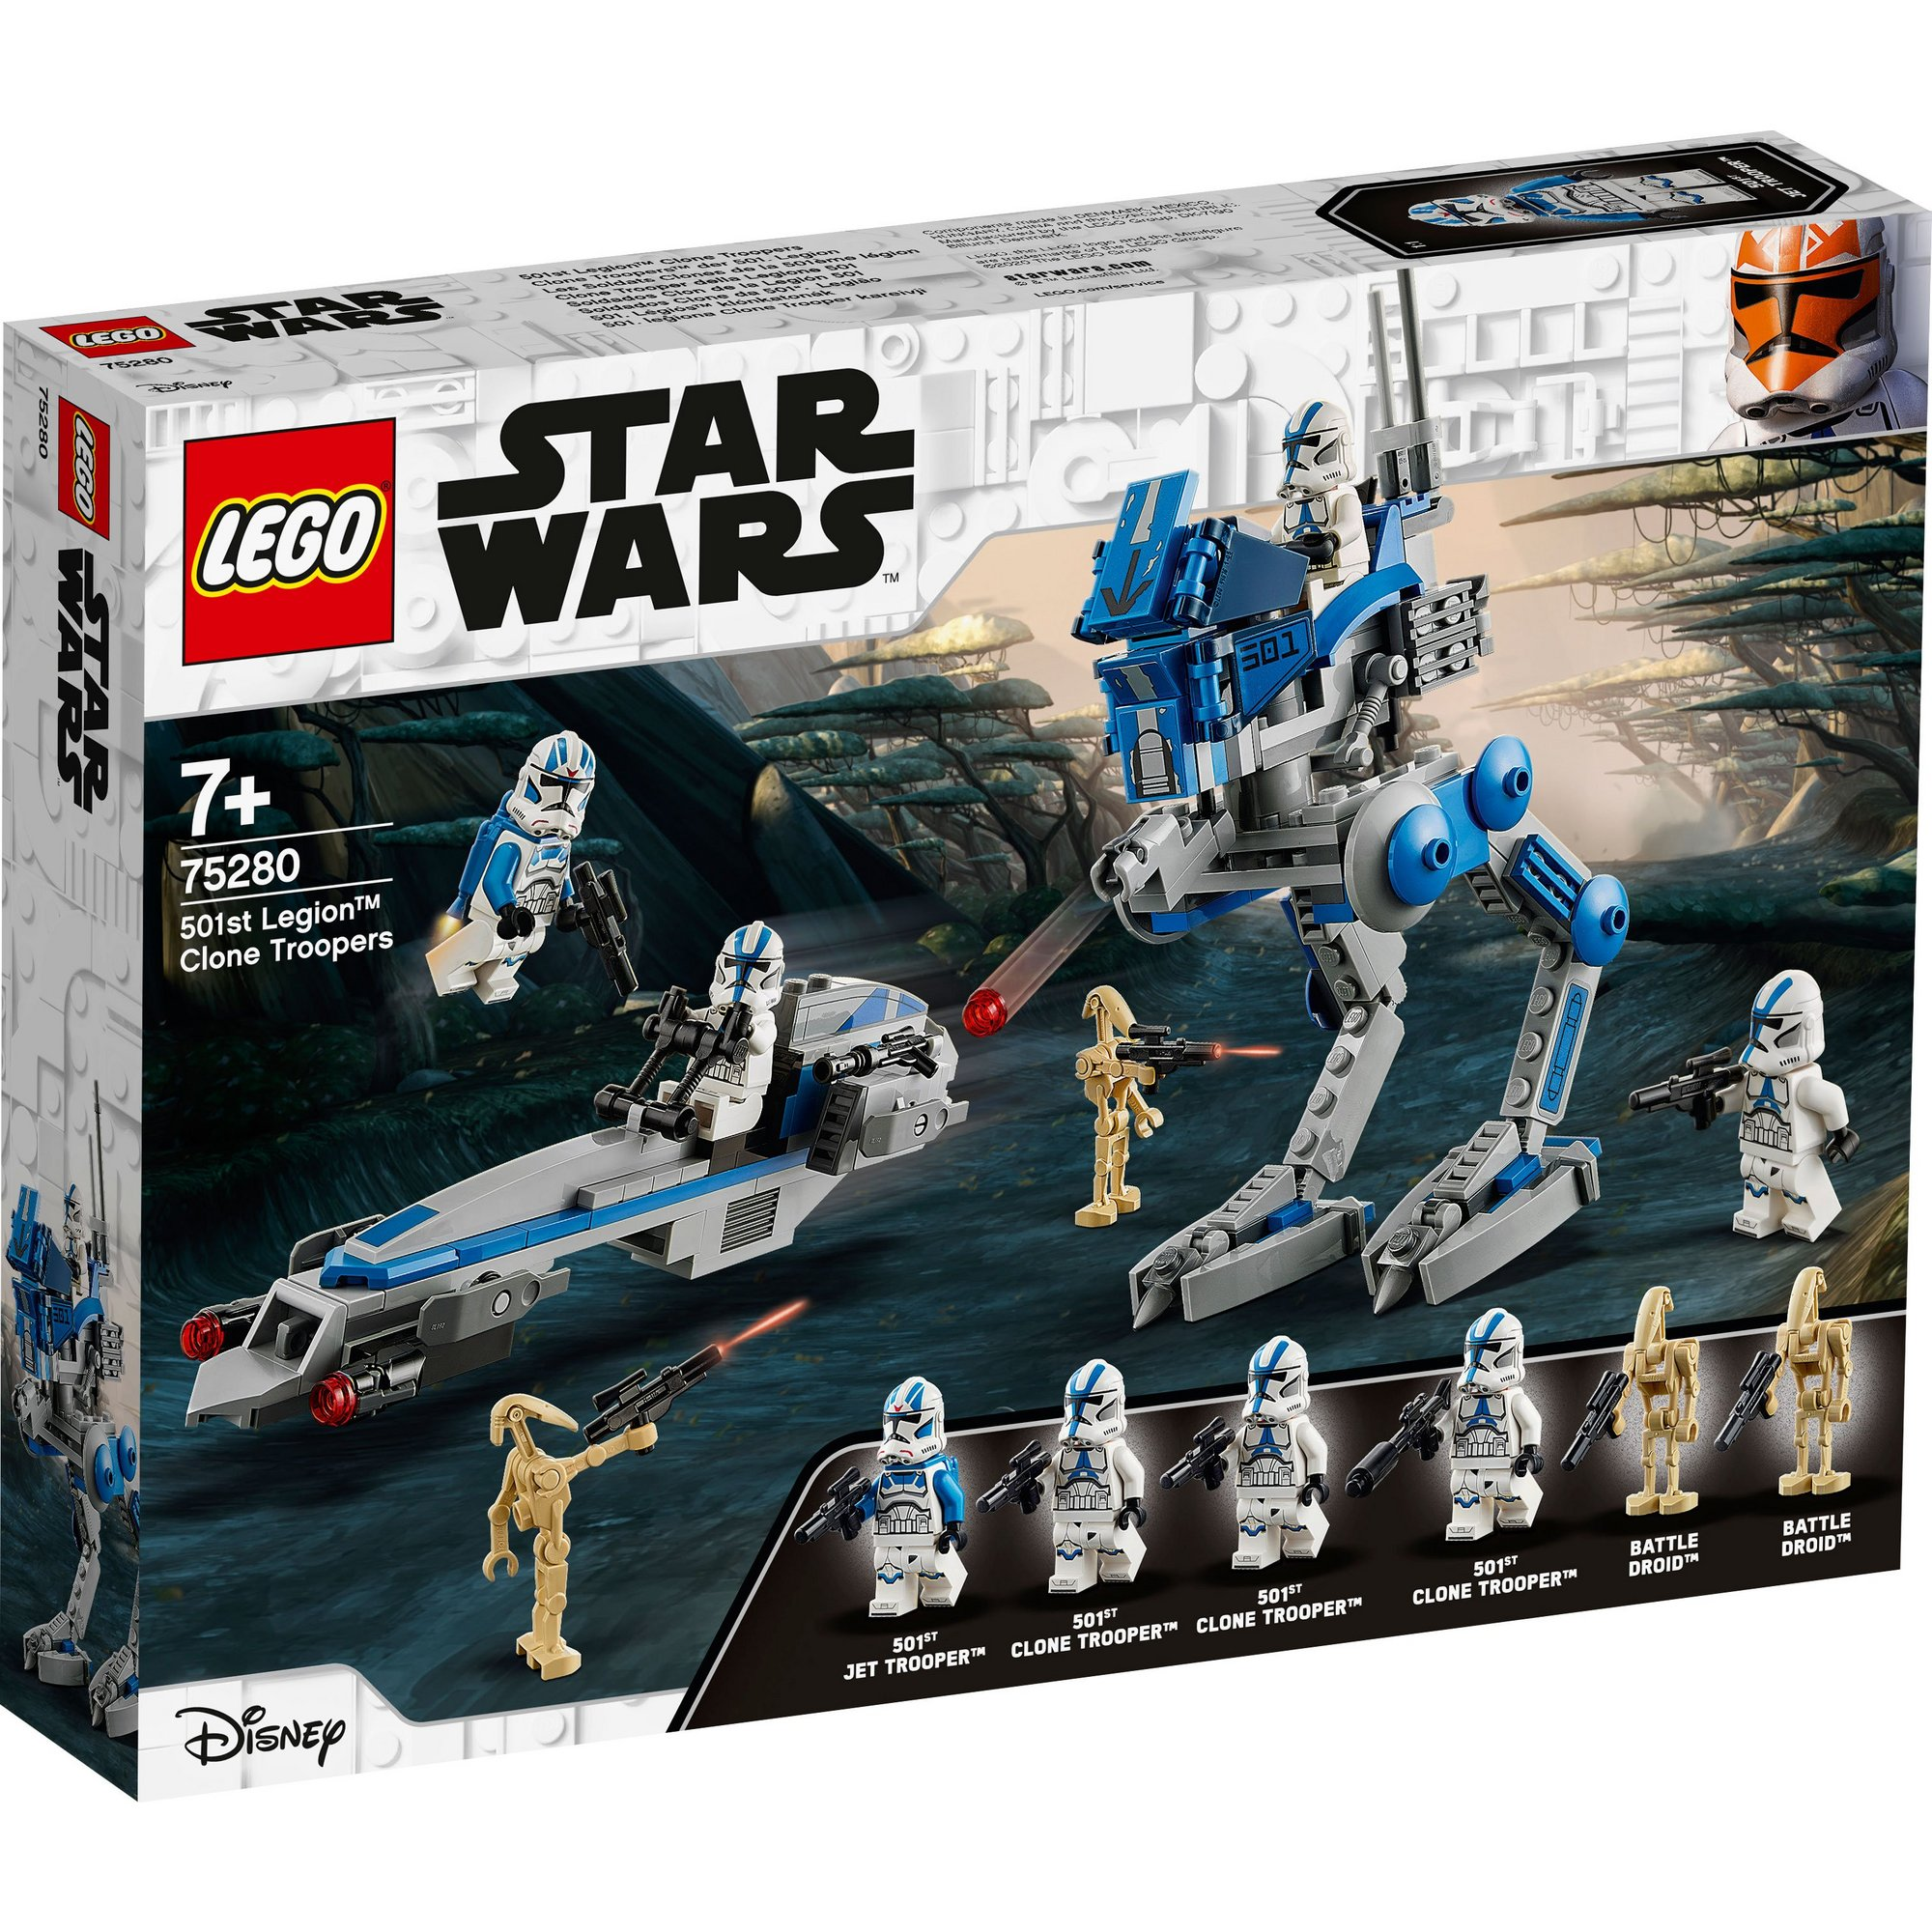 Image of LEGO Star Wars 501st Legion Clone Troopers